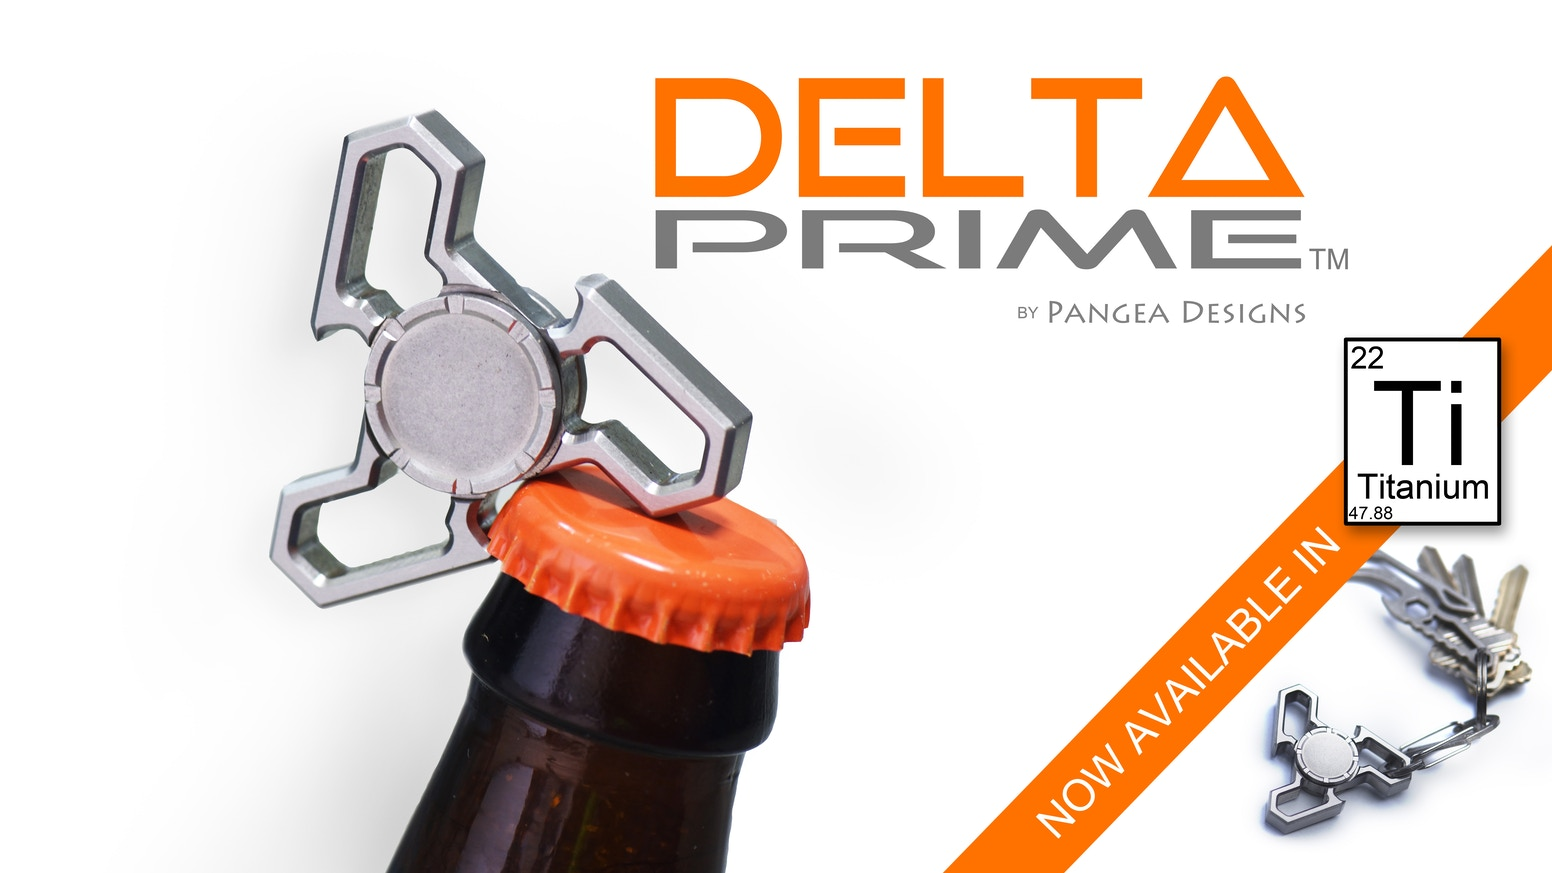 """A new spin on our Delta design. Bottle openers, 1/4"""" wrench, in a compact, keychain sized EDC fidget spinner."""